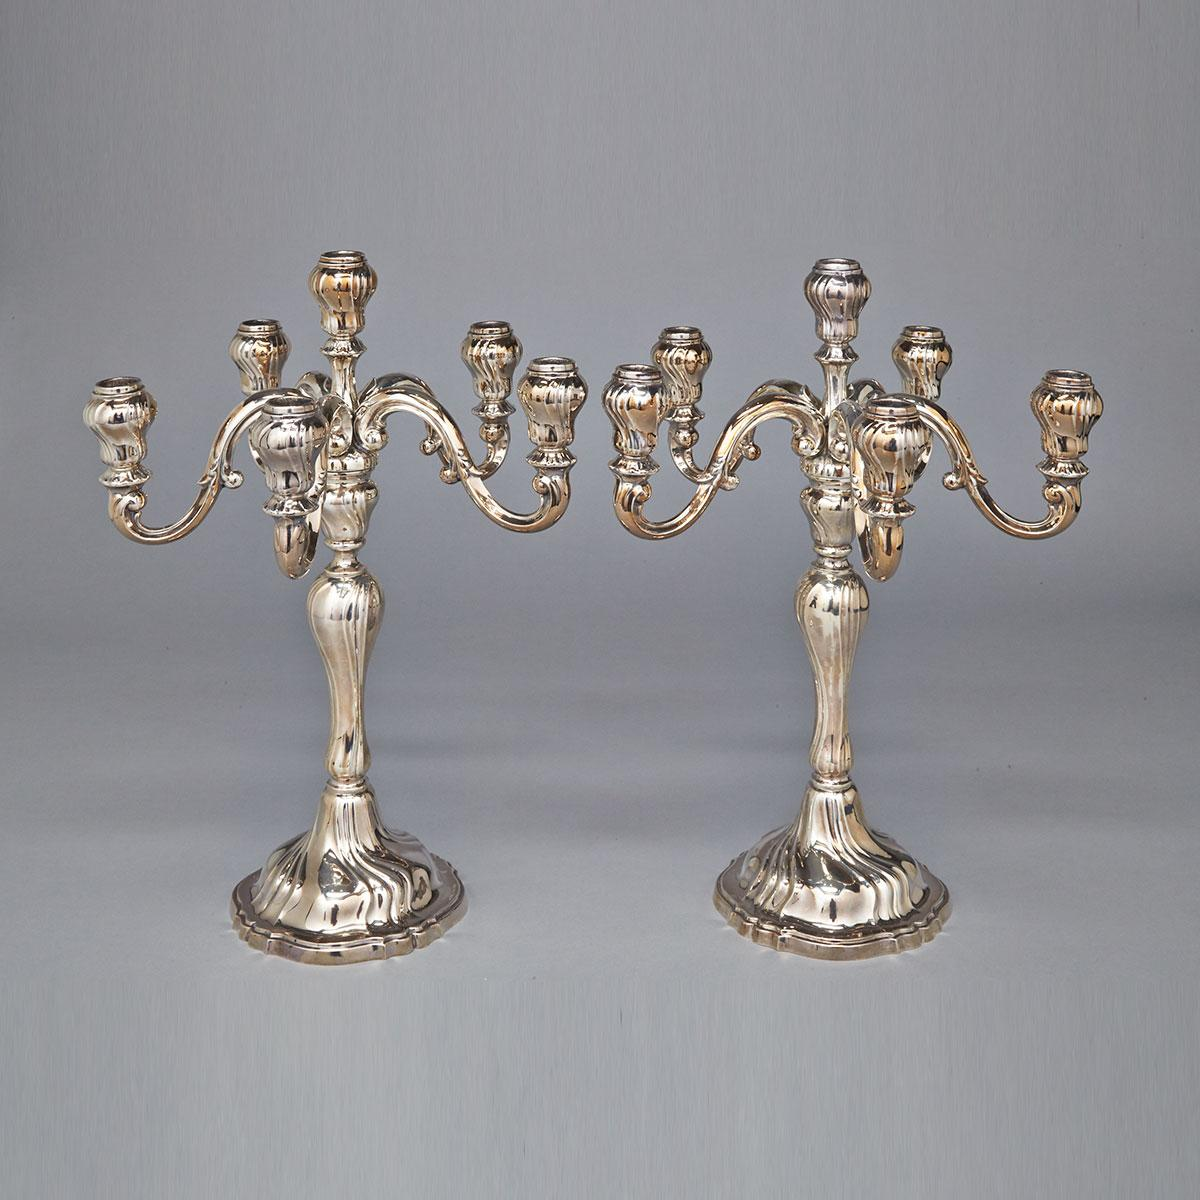 Pair of German Silver Six-Light Candelabra, Jakob Grimminger, Schwäbisch Gmünd, 20th century